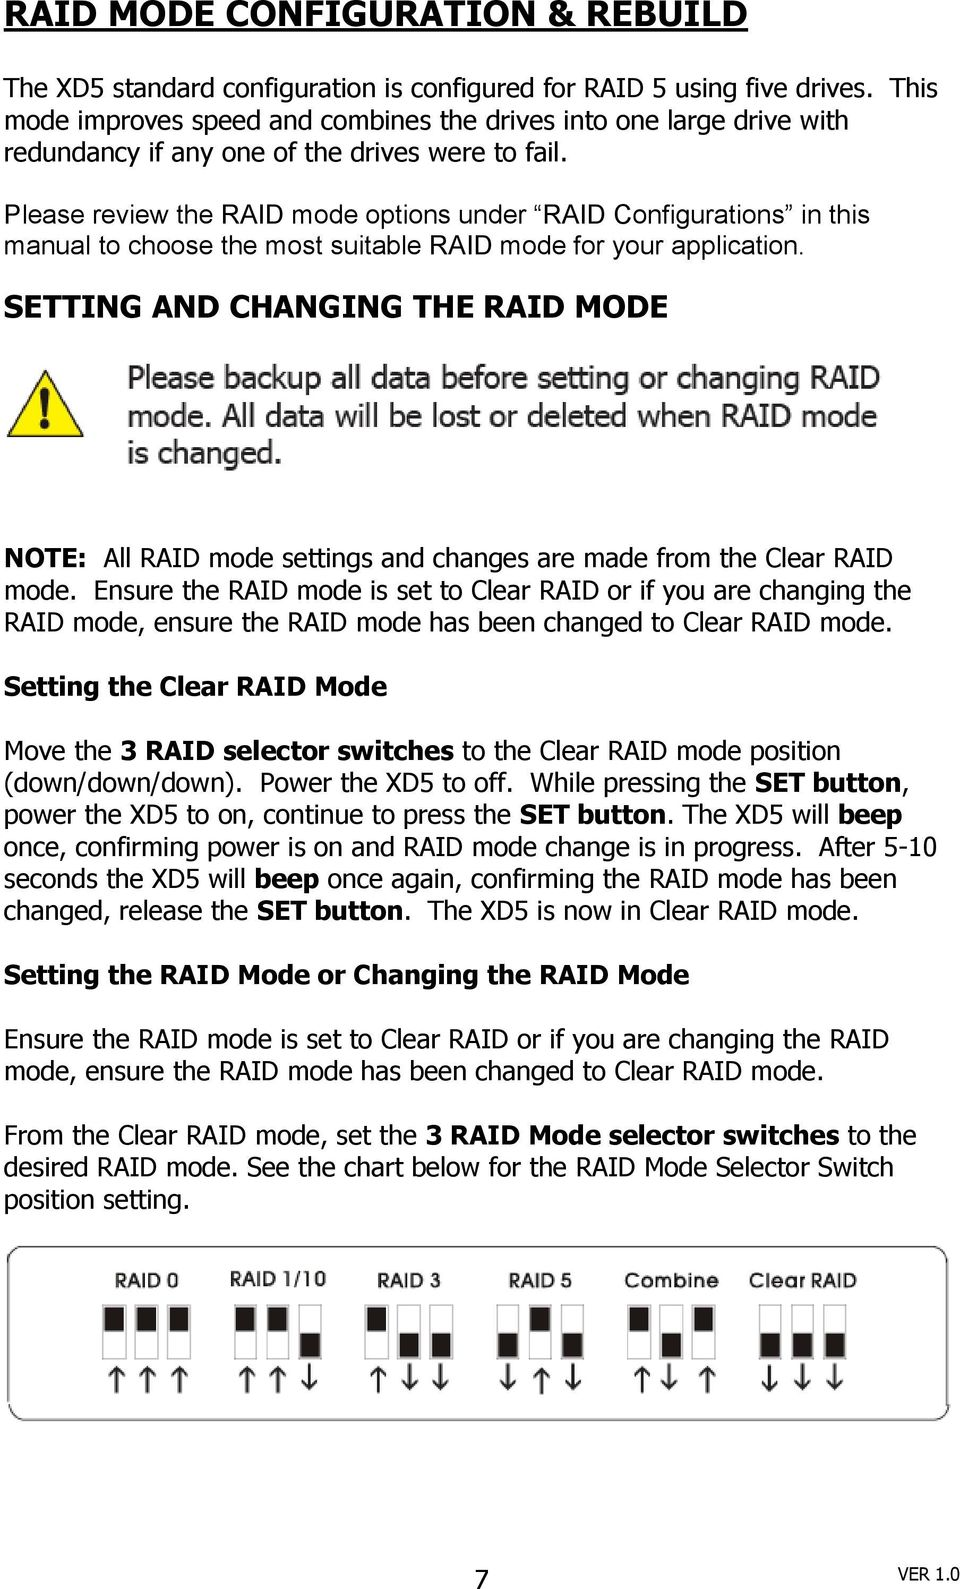 Please review the RAID mode options under RAID Configurations in this manual to choose the most suitable RAID mode for your application.